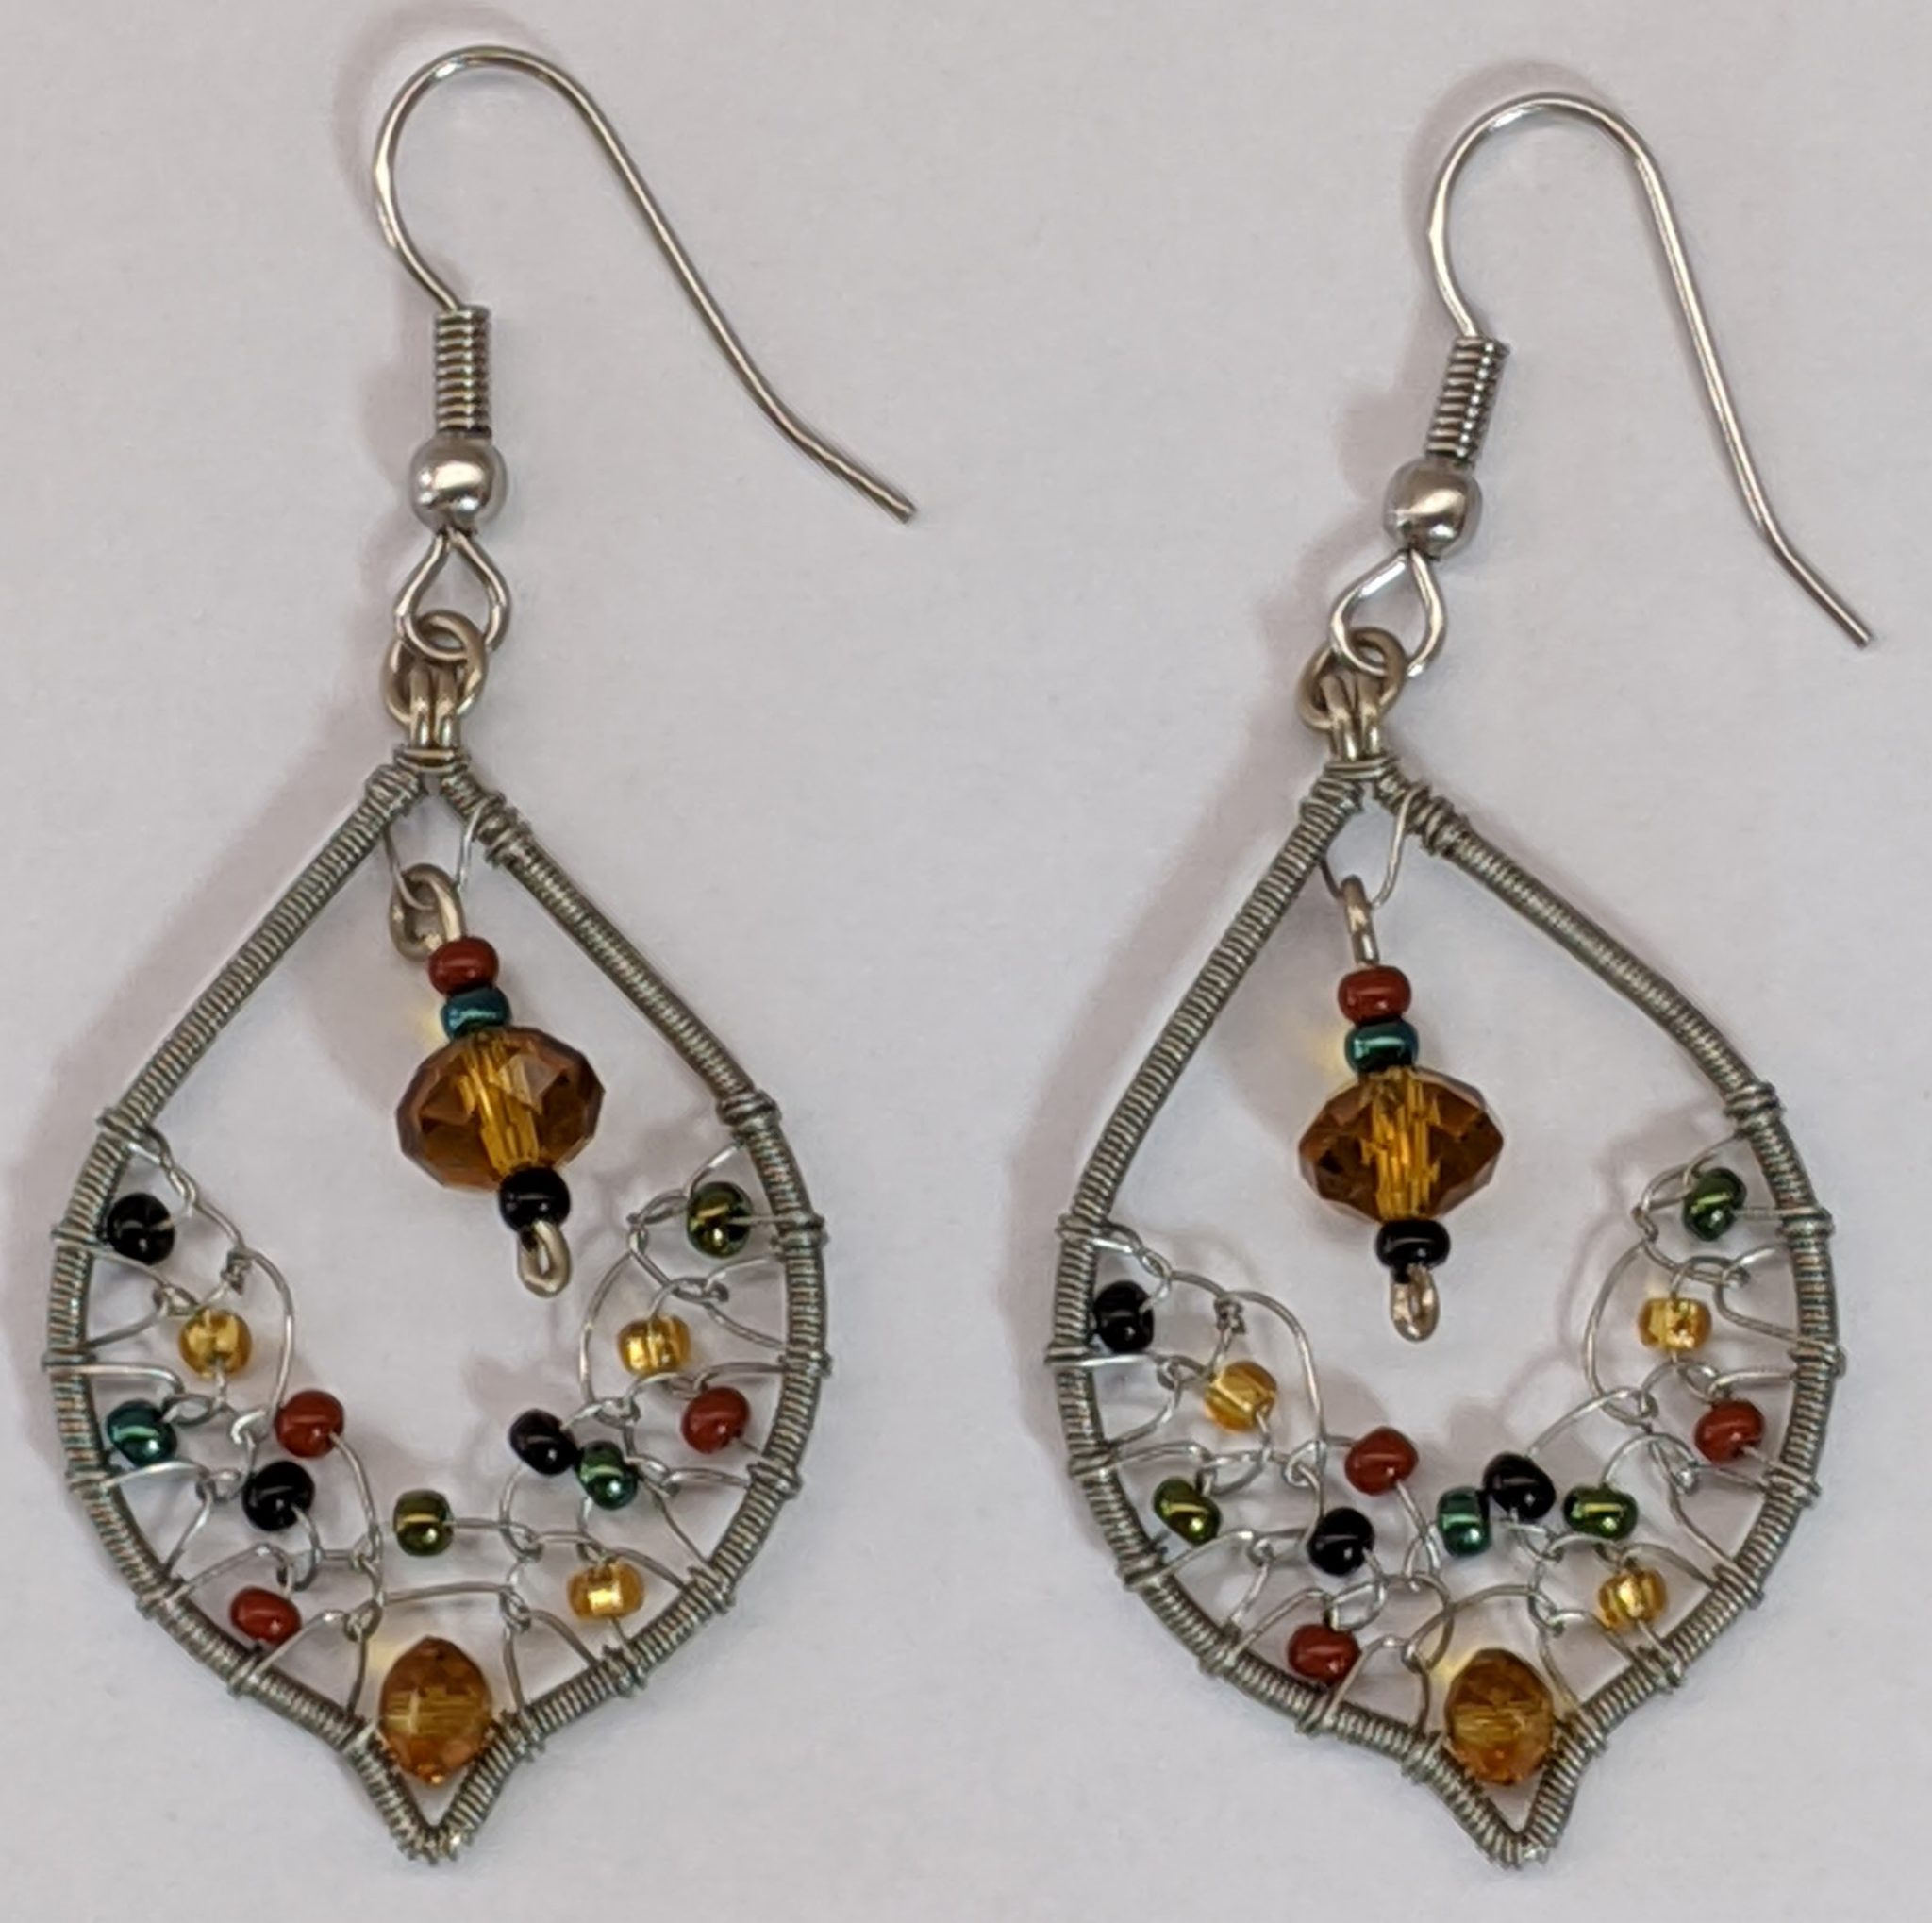 Arabian Nights Earrings - Sophisticated Autumn